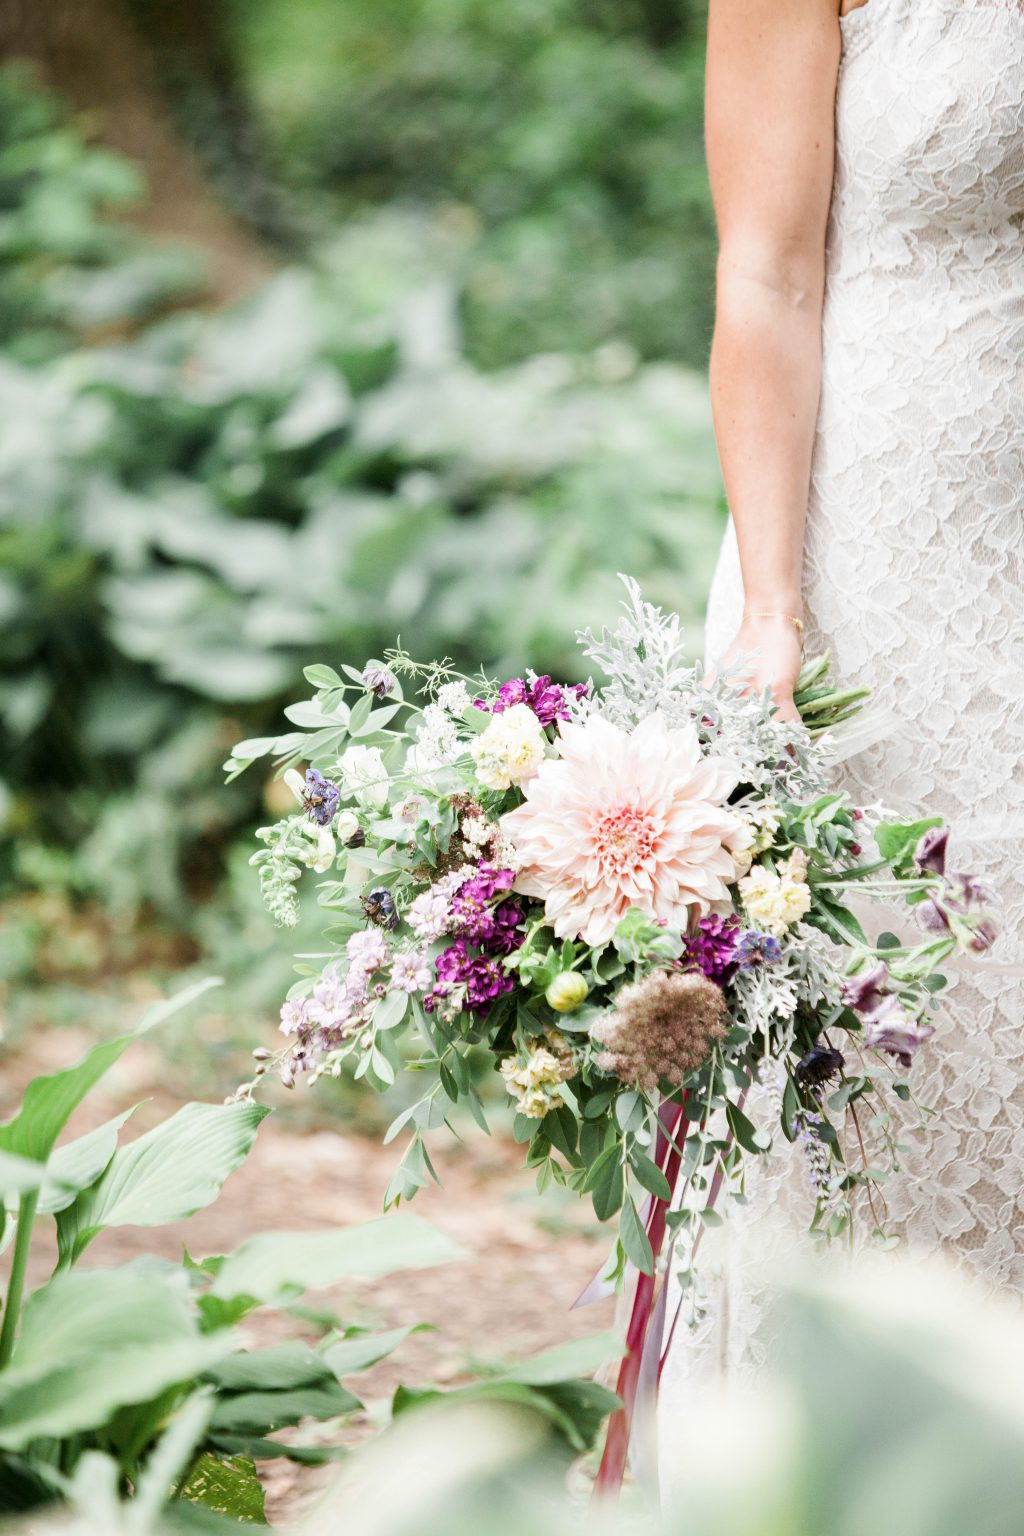 awbury-arboretum-wedding-DIY-boho-summer-haley-richter-photography-070